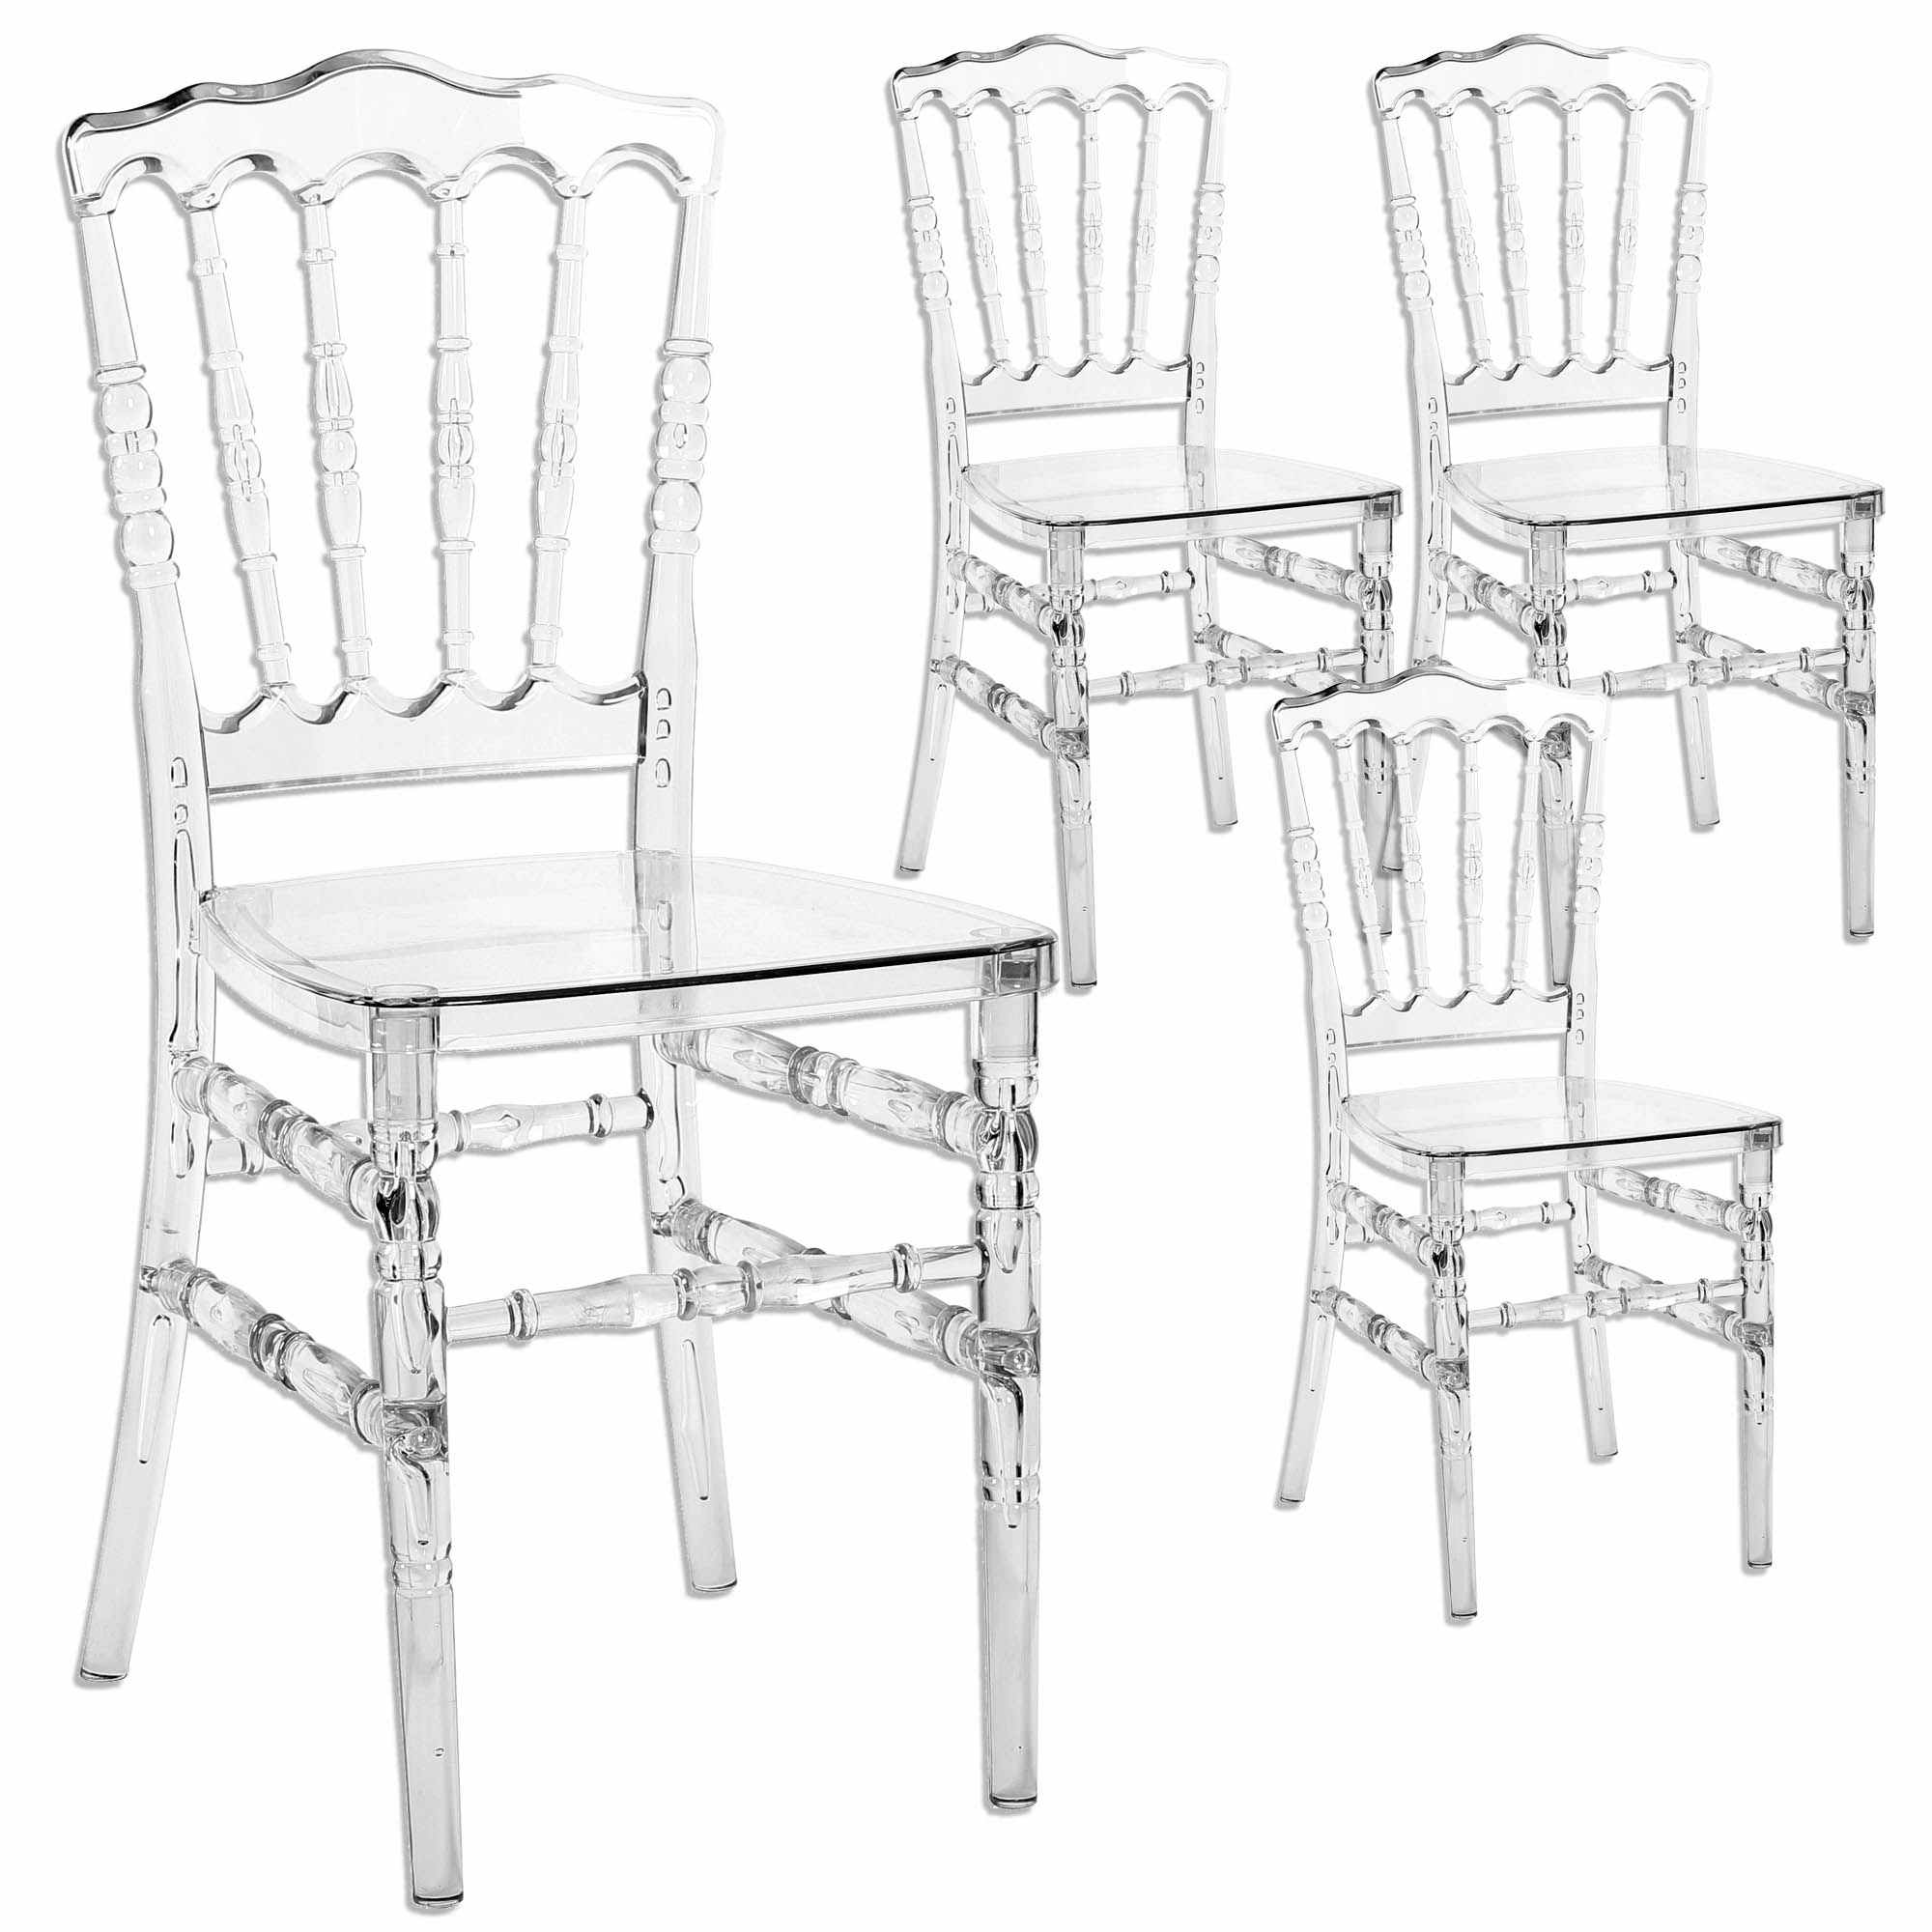 Deco in paris lot de 4 chaises transparent en plexi - 4 chaises pas cher ...